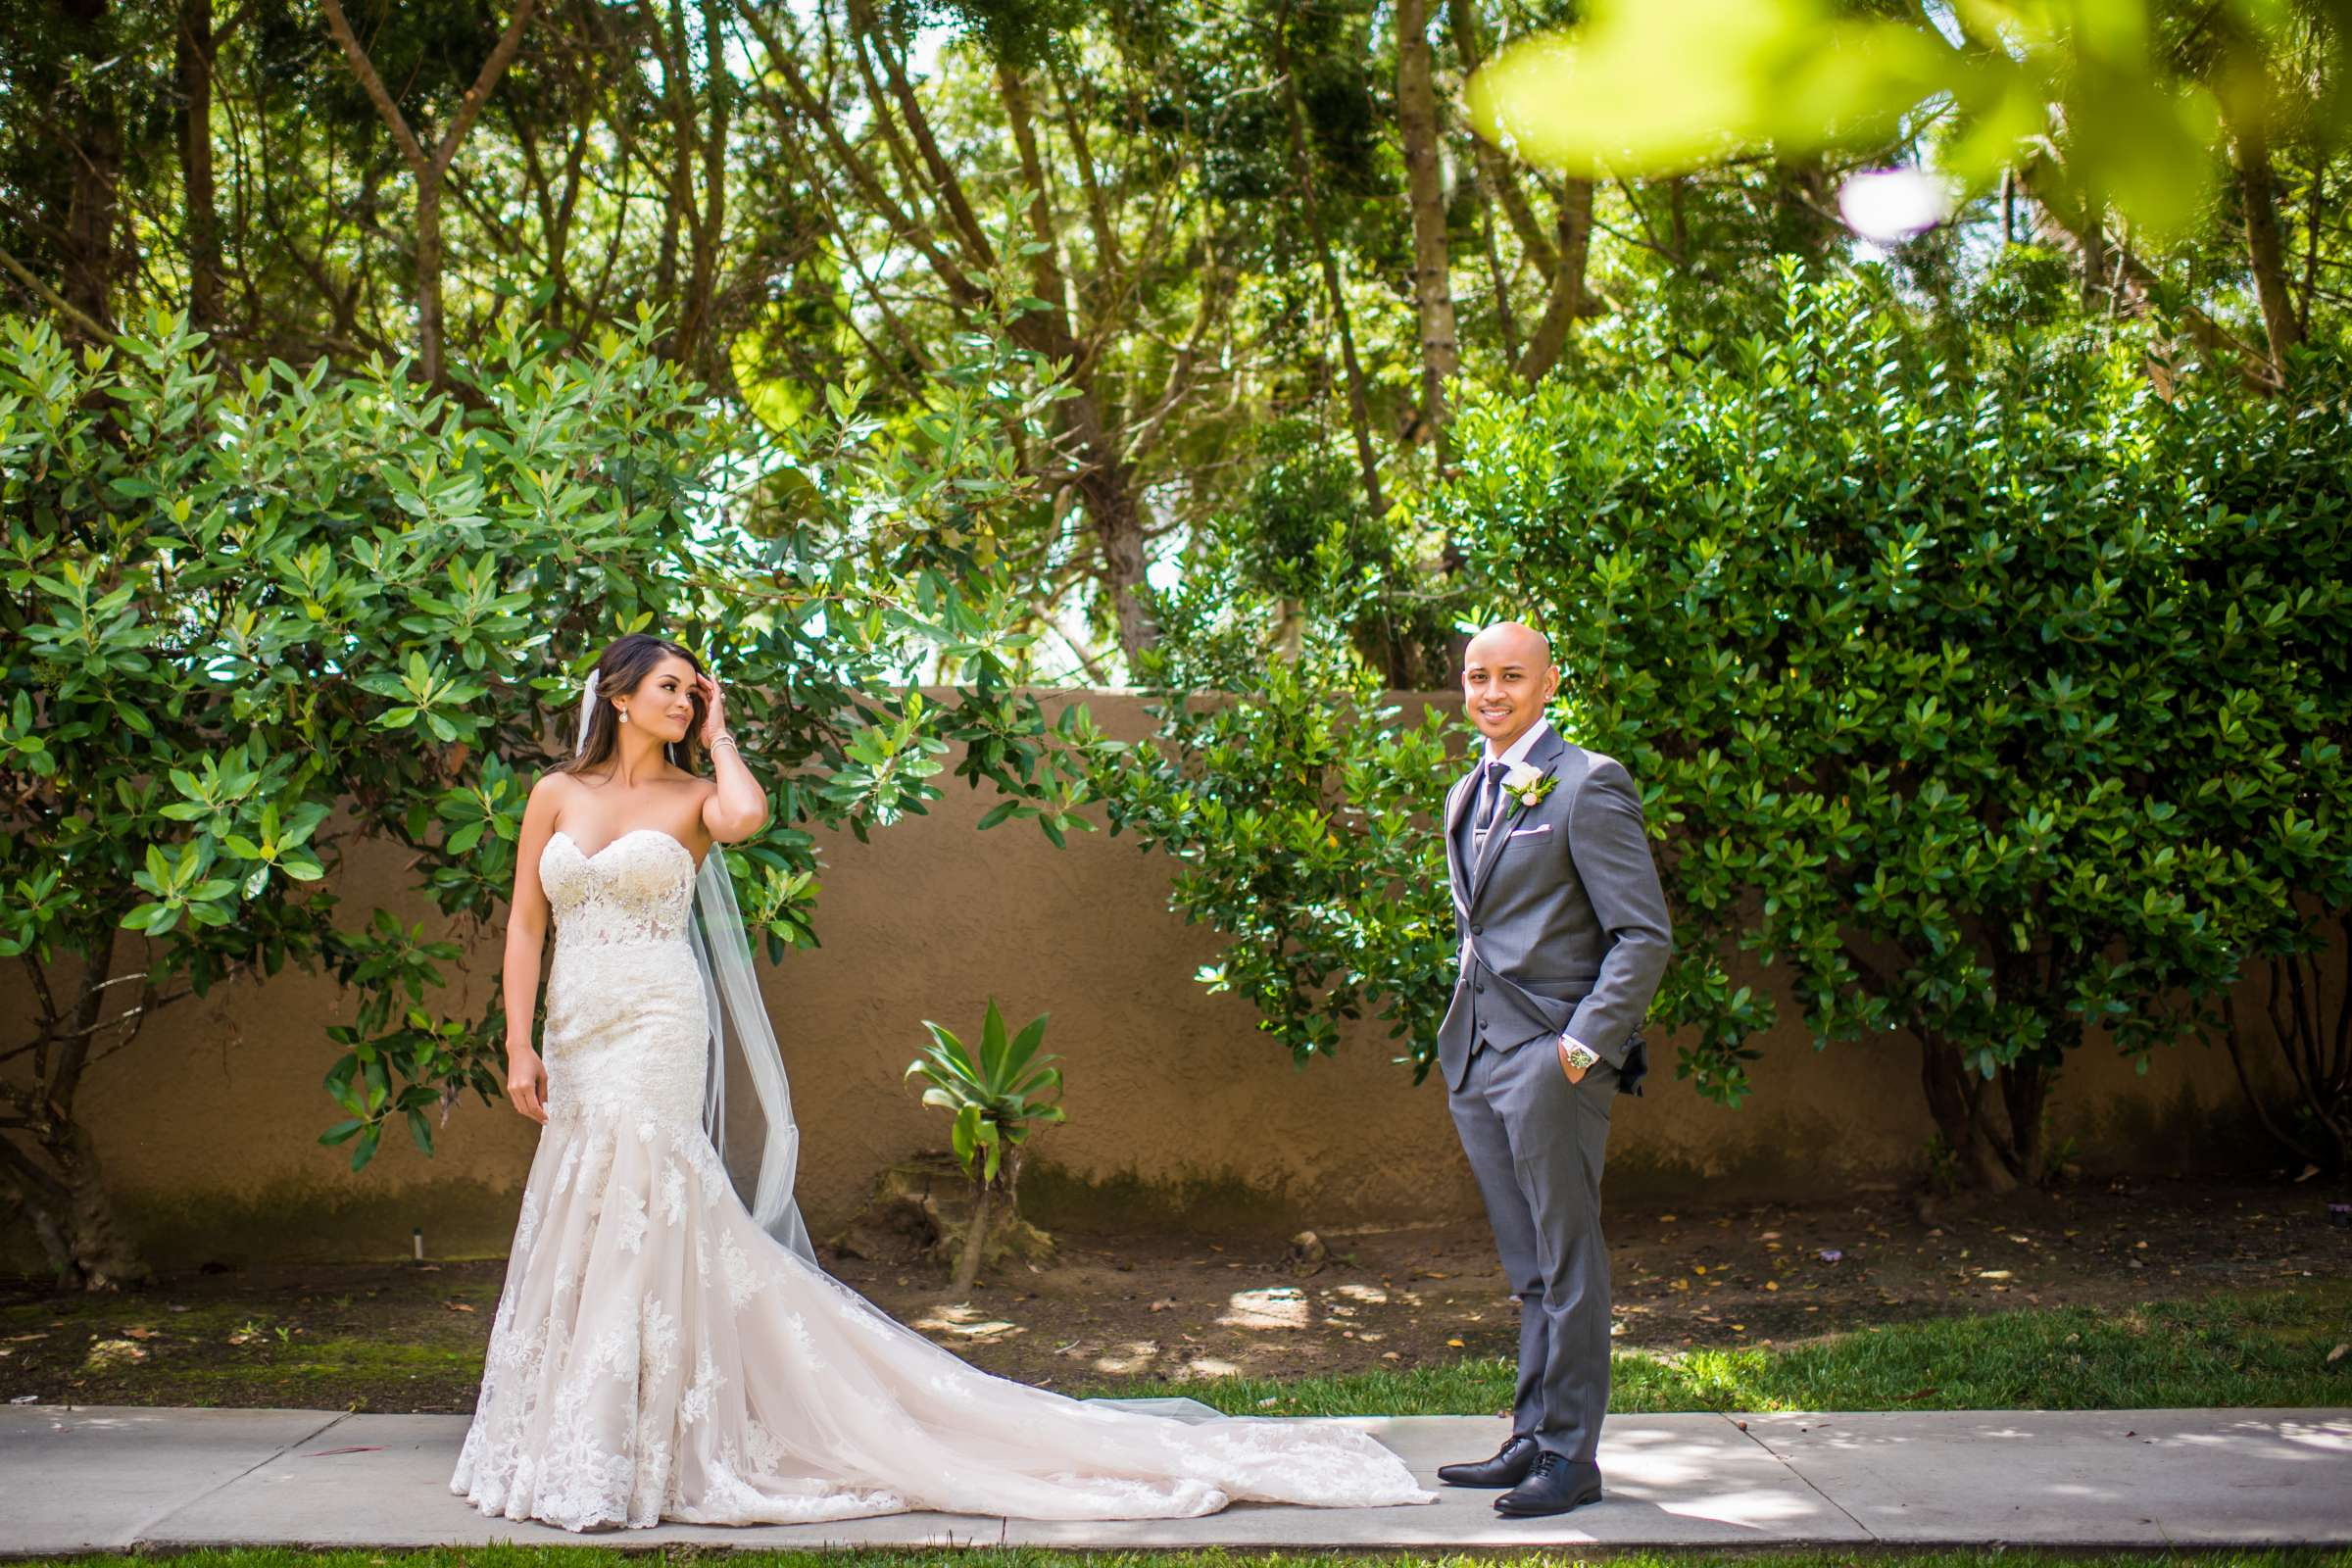 Scripps Seaside Forum Wedding coordinated by Lavish Weddings, Cindy and Justin Wedding Photo #381773 by True Photography